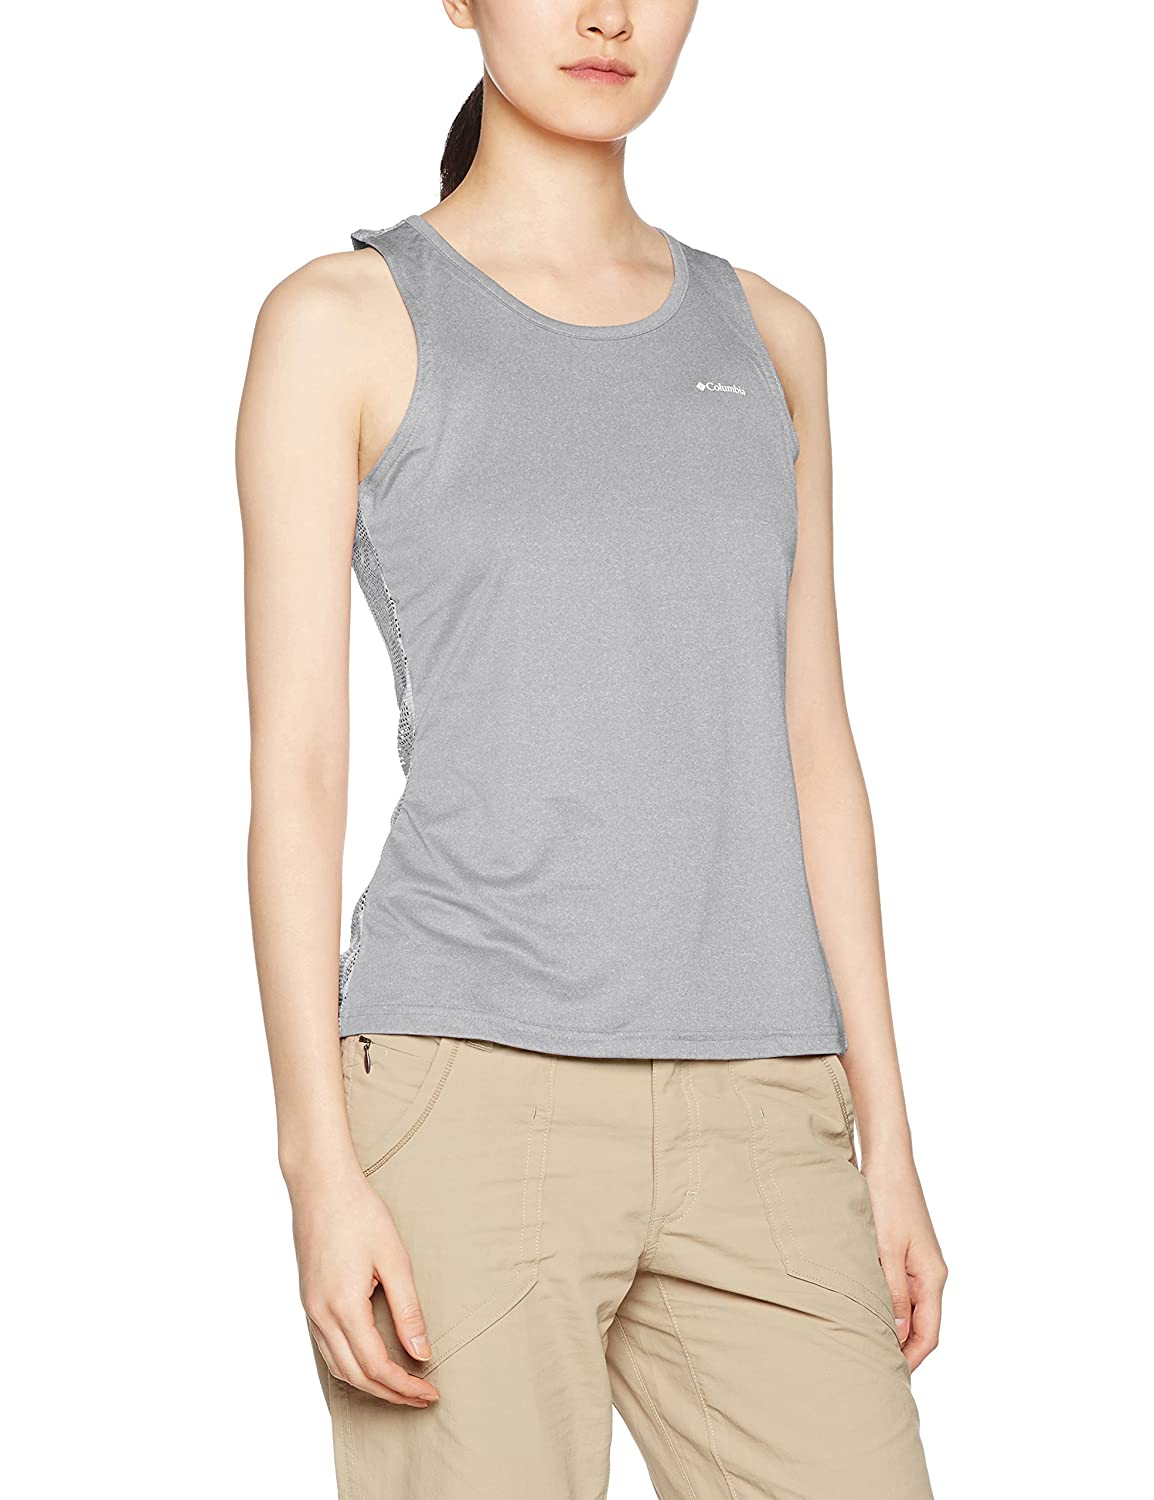 TALLA M. Columbia Mujer Camiseta de tirantes, PEAK TO POINT NOVELTY TANK, Poliéster, 1710451